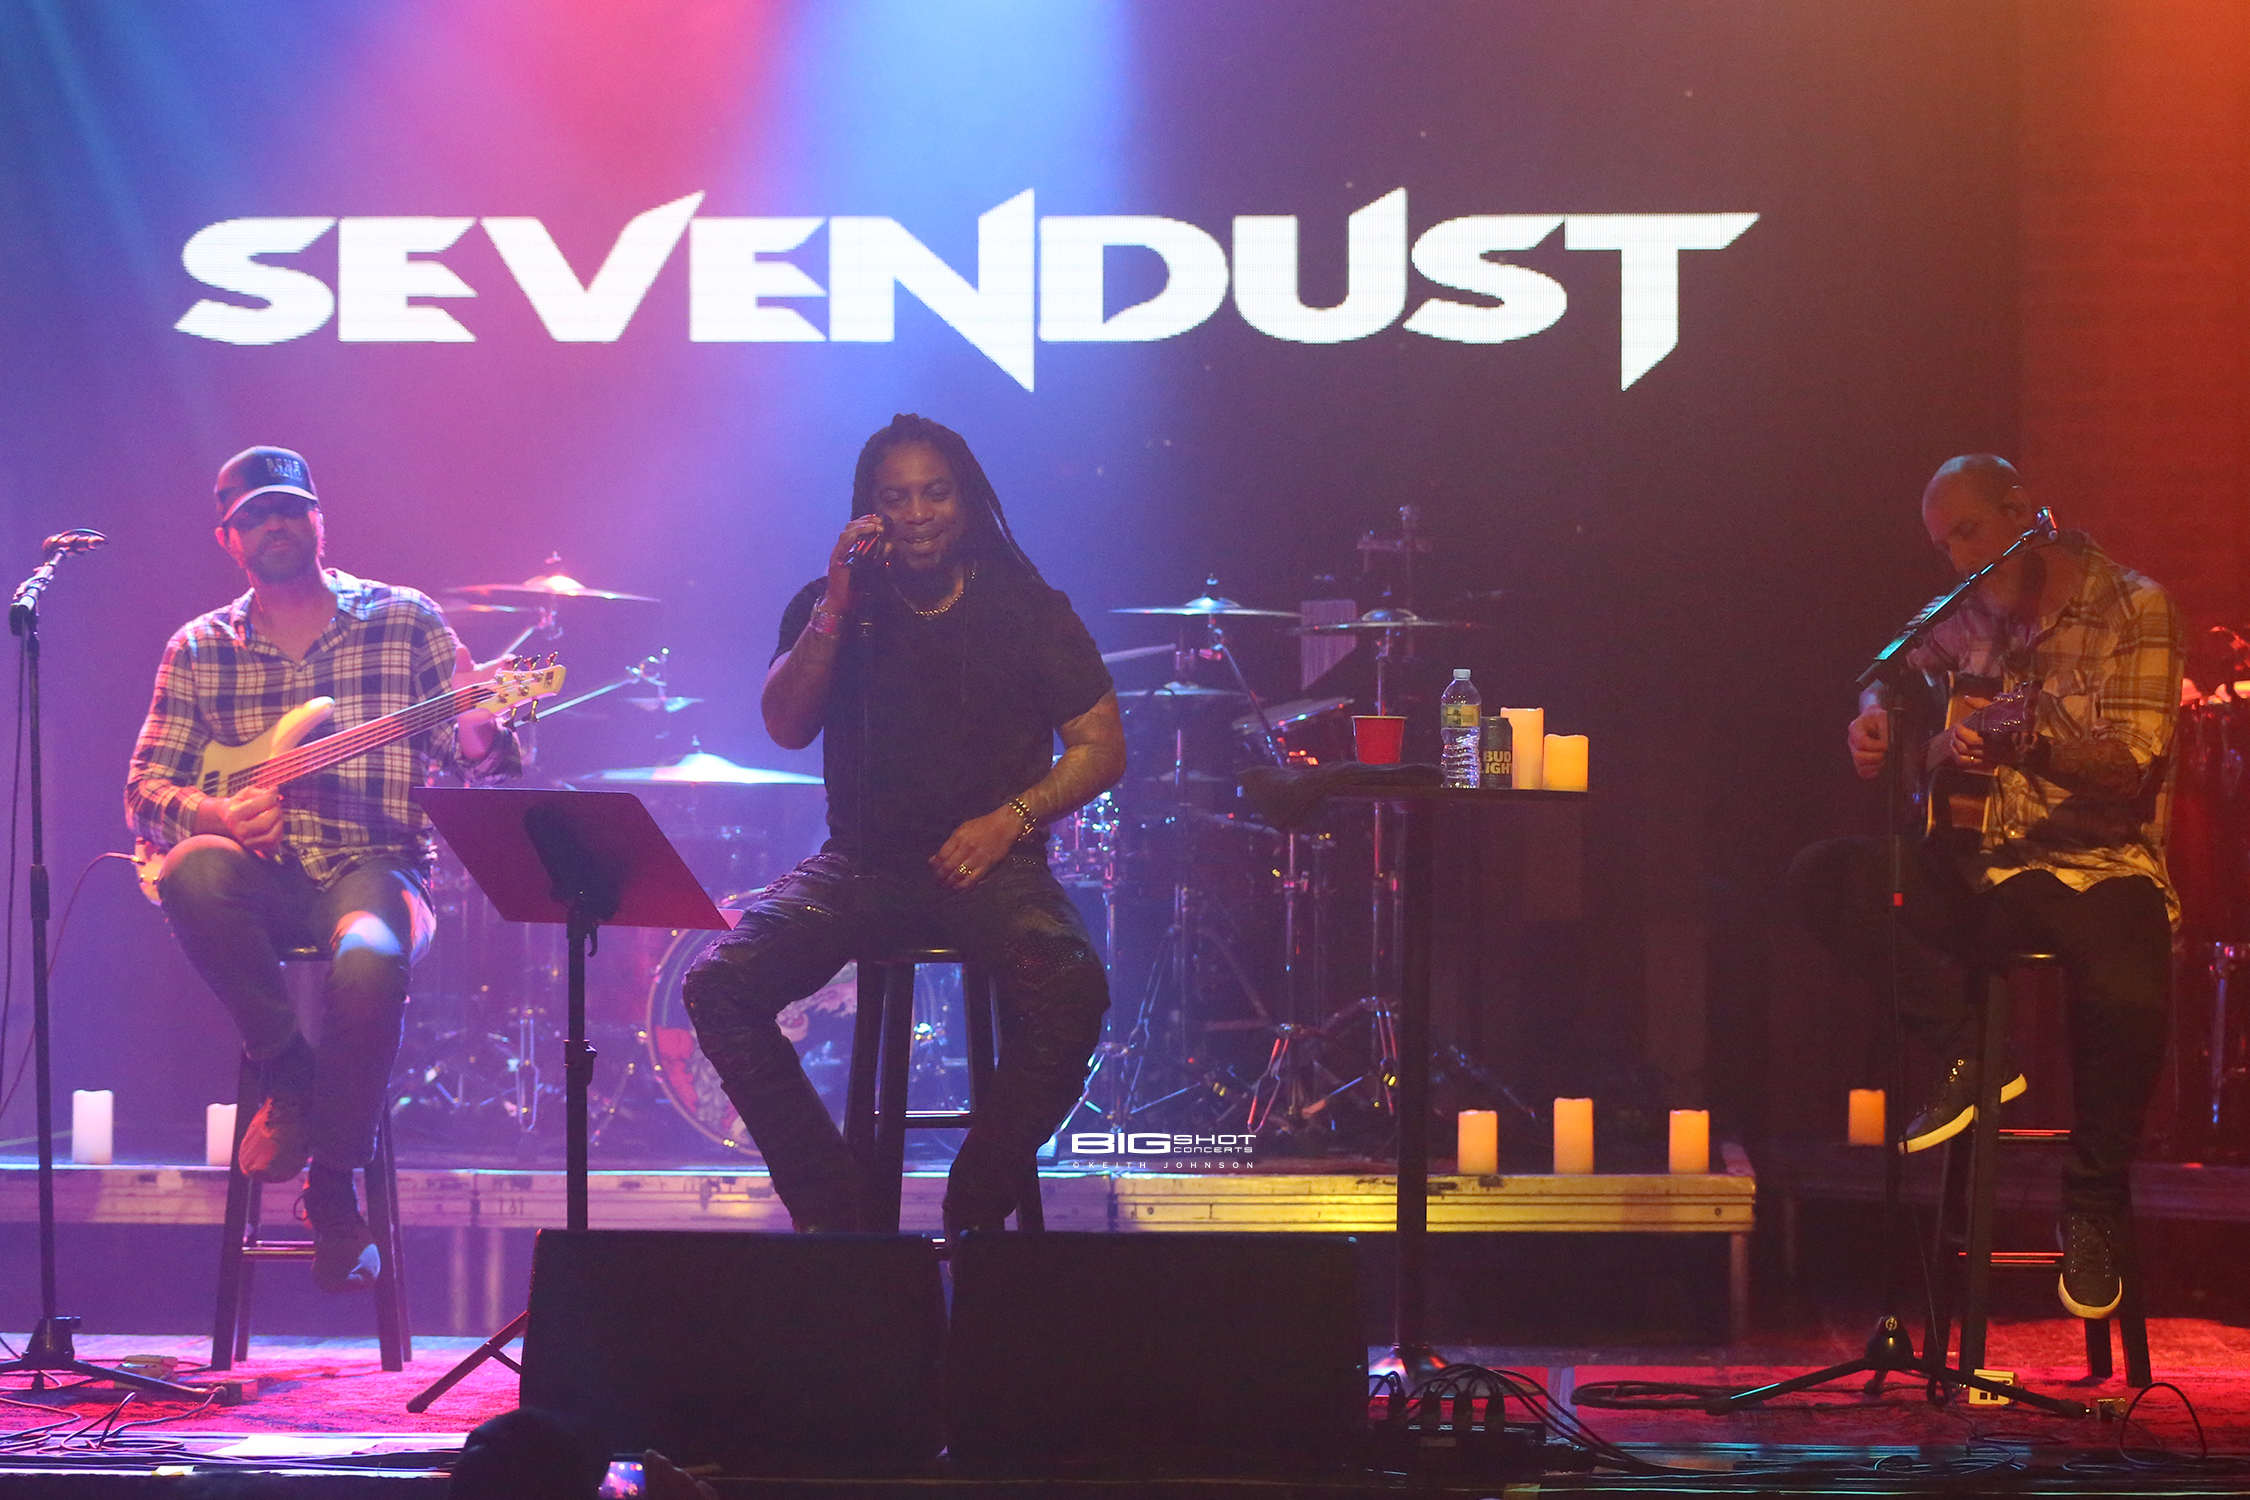 Sevendust Year End Tour 2019